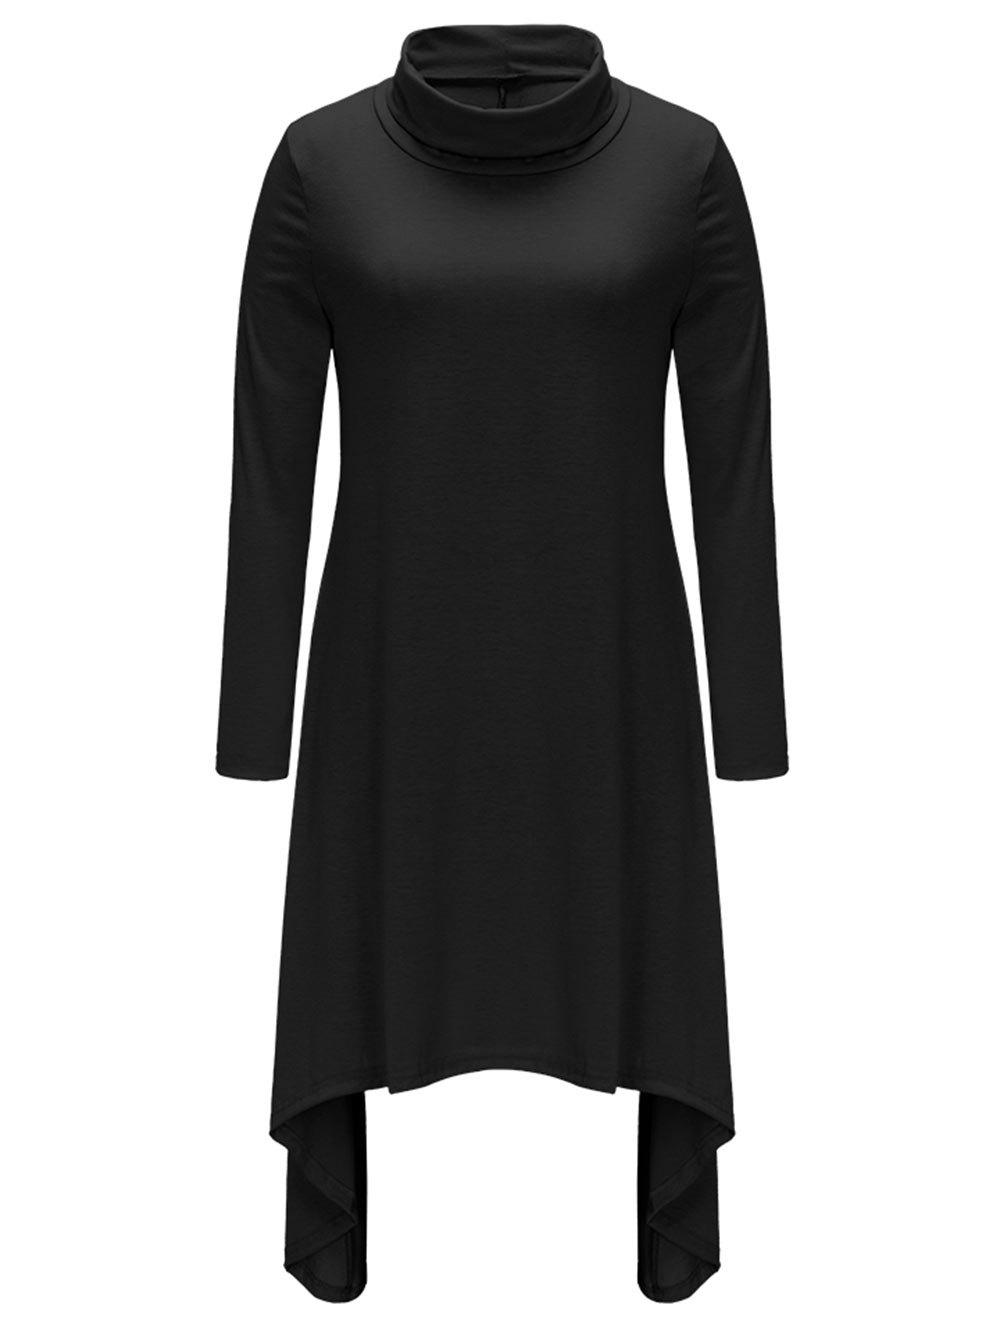 Turtle Neck Long Sleeve Asymmetric Dress - BLACK L